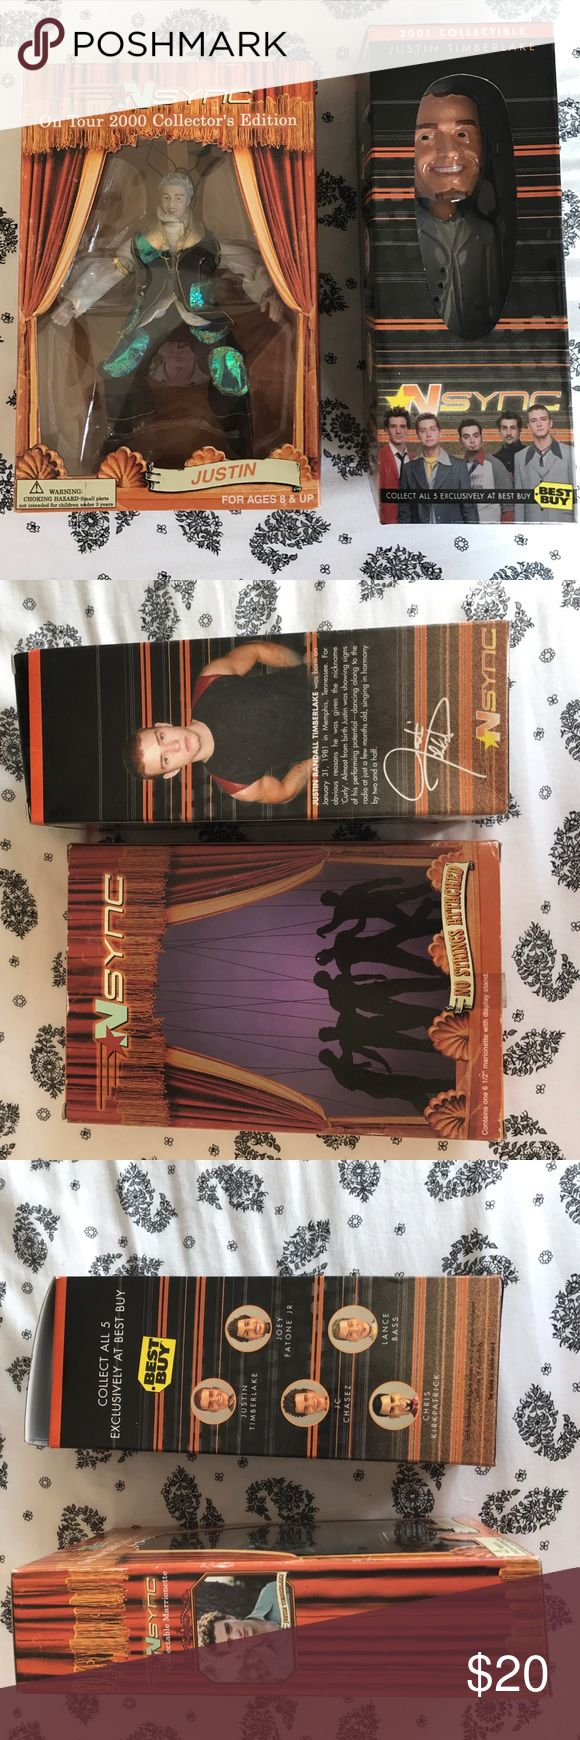 2 collectible *NSYNC Justin Timberlake dolls 2 brand new in package collectible Justin Timberlake dolls. Urban Outfitters Accessories